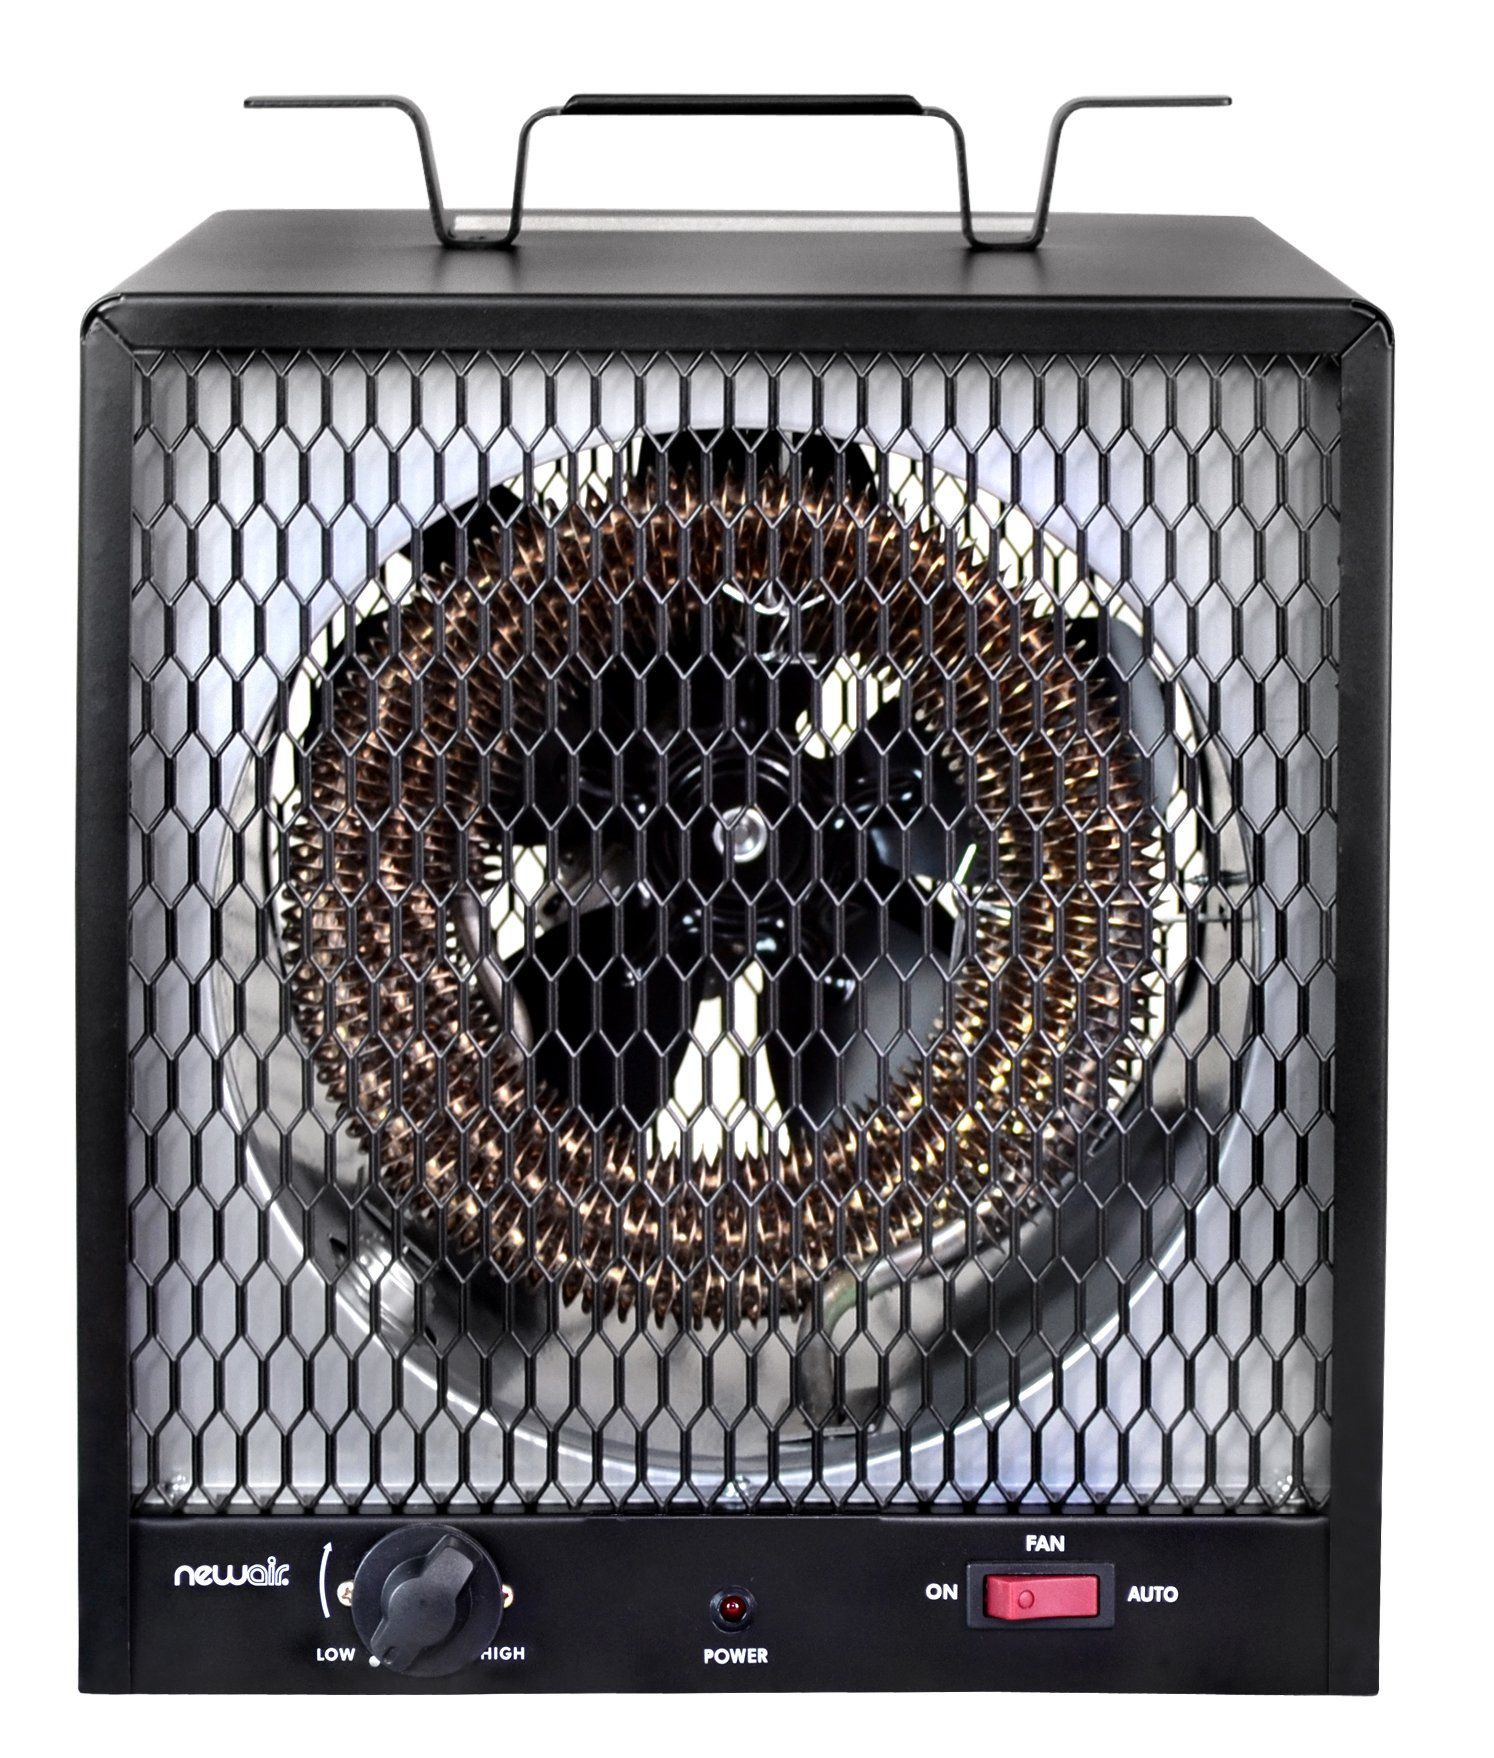 Newair G56 5600 Watt Garage Heater Get Fast Heat For 560 Sq Ft Click Image For More Details This Is An Af Garage Heater Electric Garage Heaters Heater